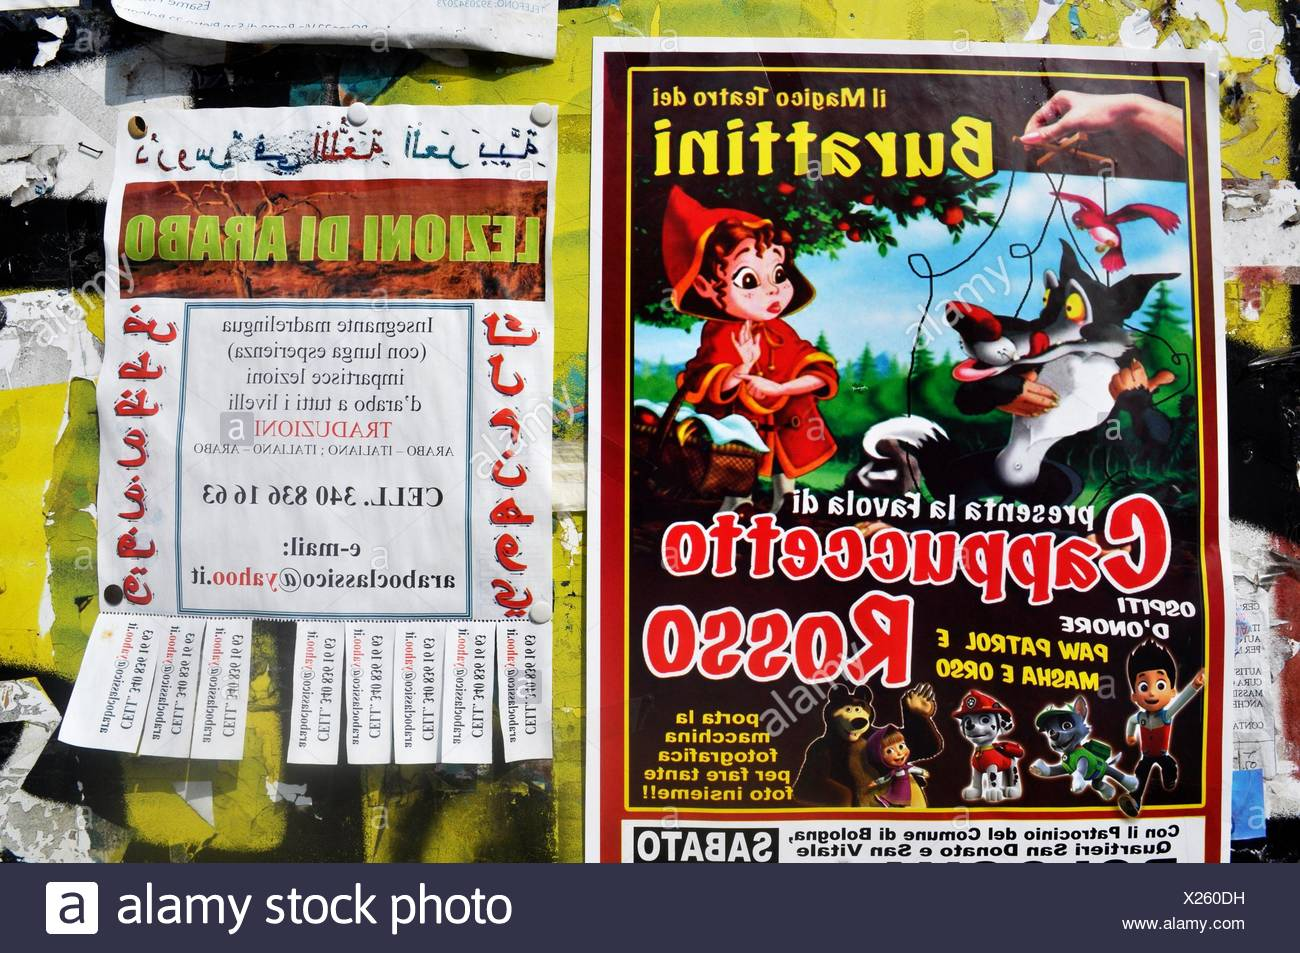 Bologna, Italy: ads for a puppets show and for Arabic classes, side by side - Stock Image